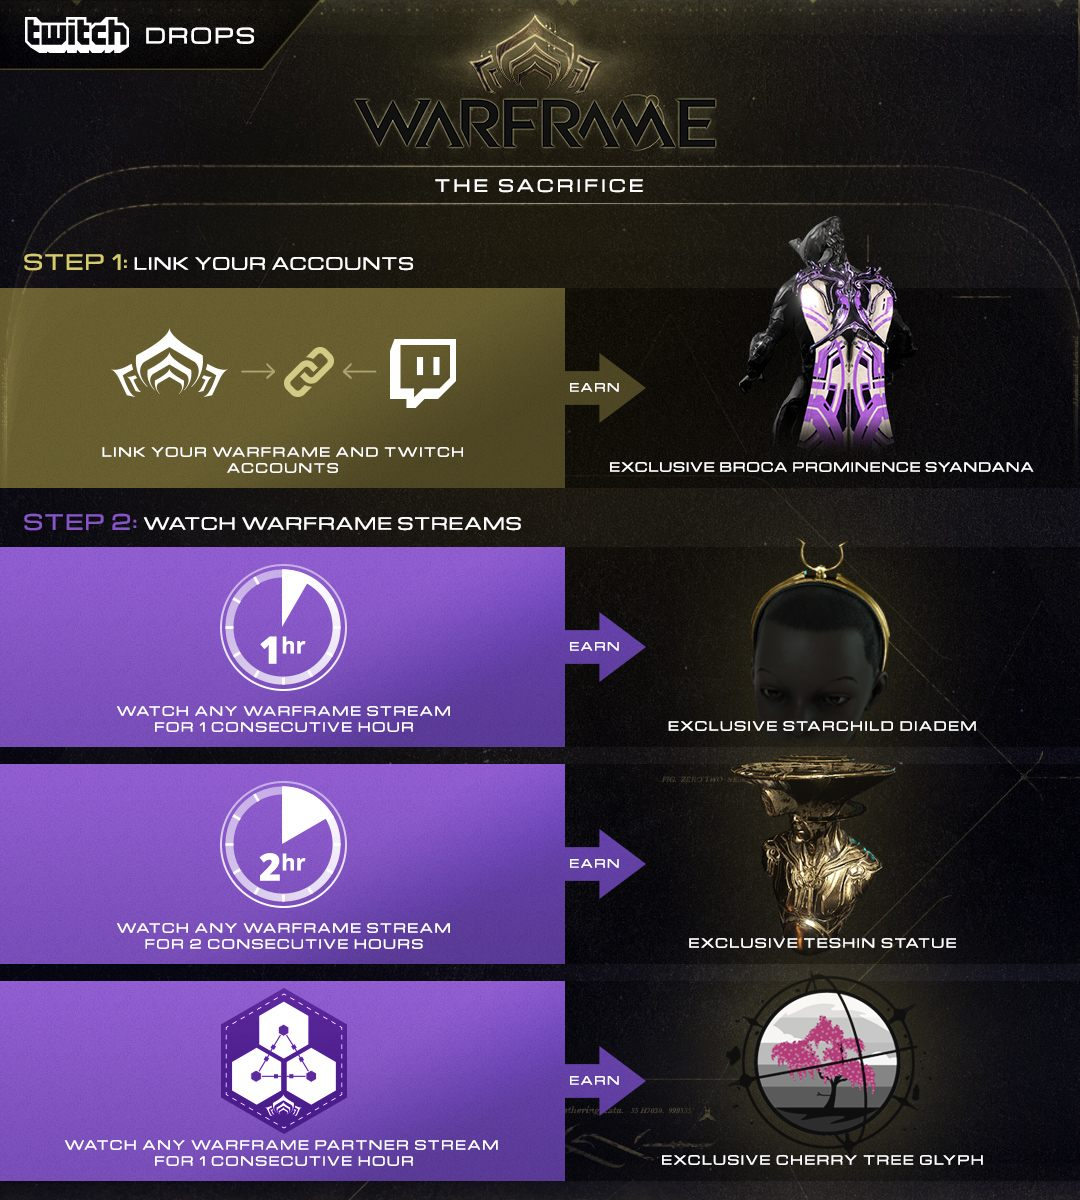 TheSacrifice_Console_TwitchDrops_Infographic.jpg